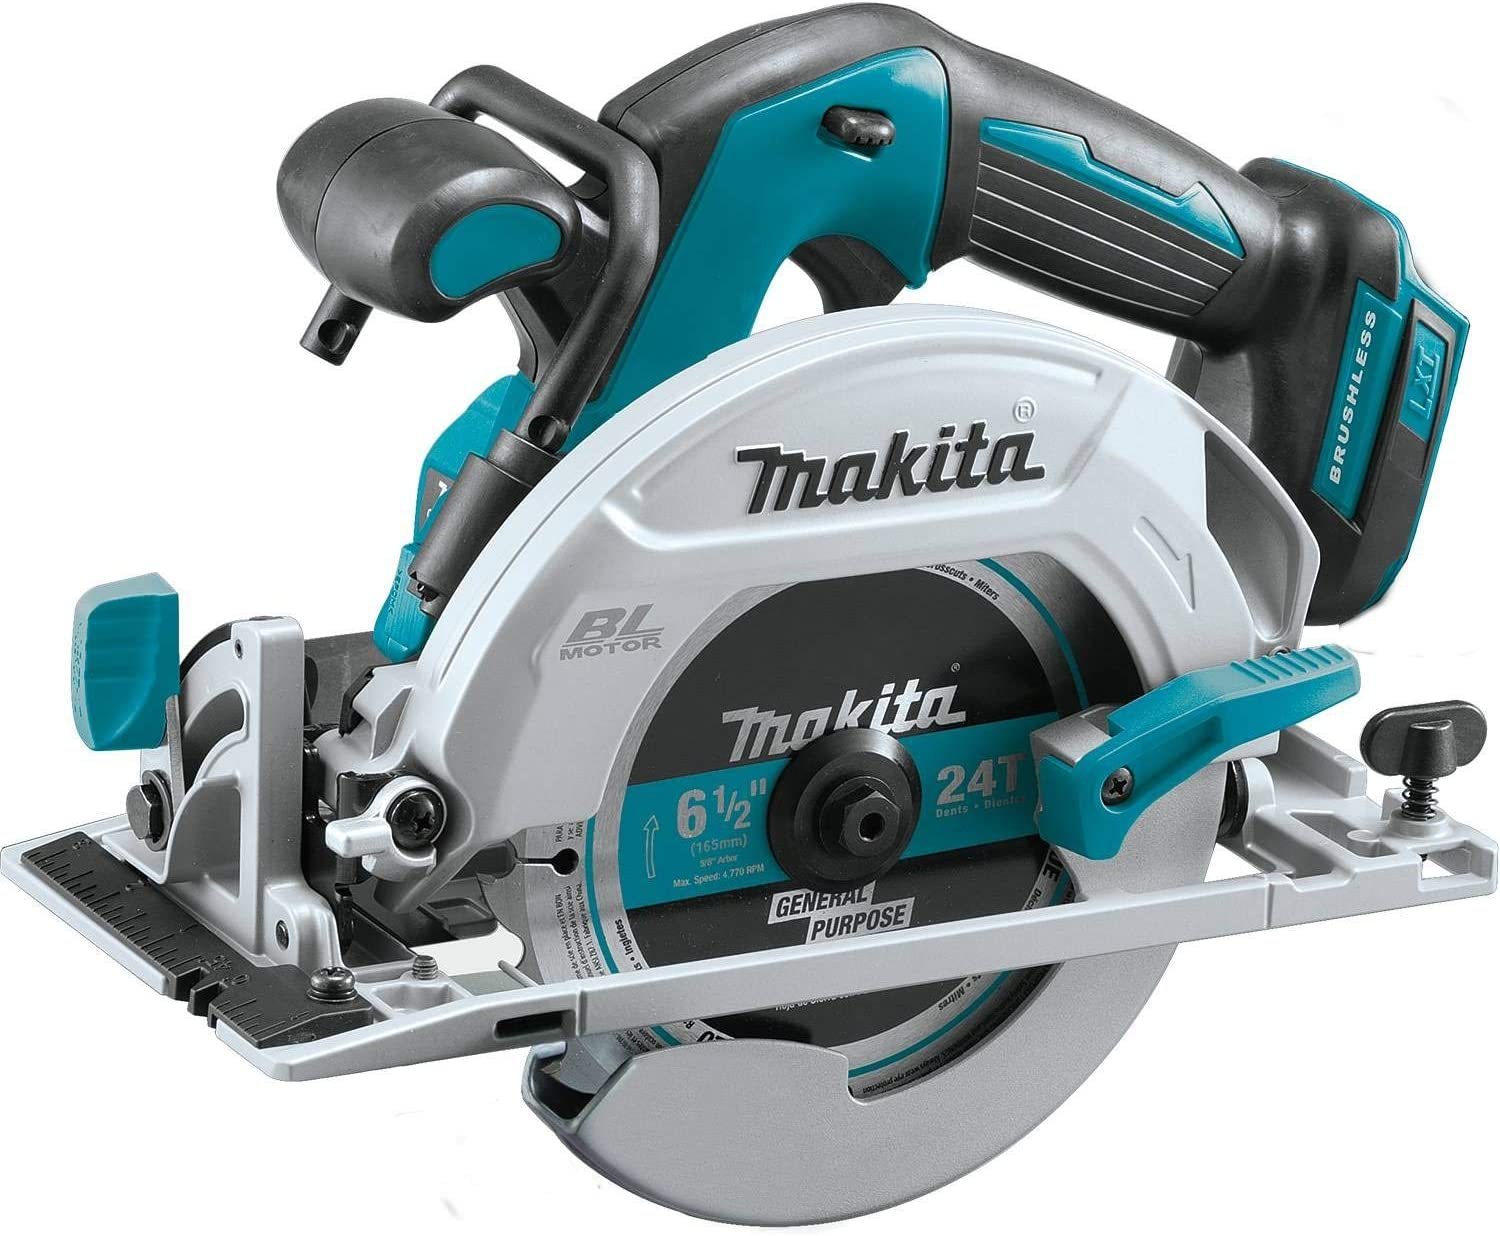 "Makita Cordless 6-1/2"" Circular Saw"